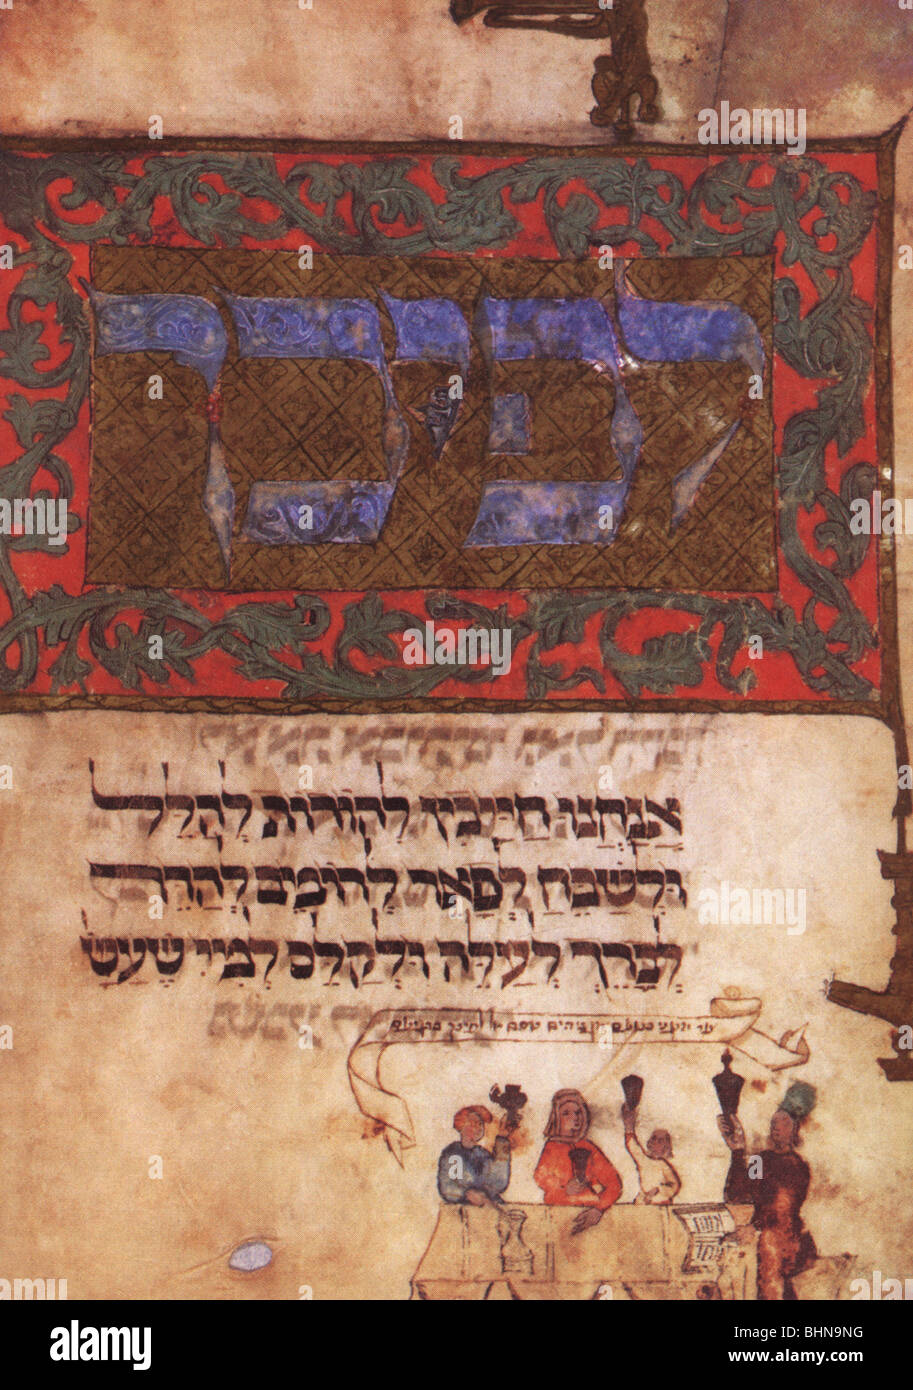 Judaism, literature, Haggada, page, Germany, 15th century, National Library Paris, historic, historical, the Jews, - Stock Image